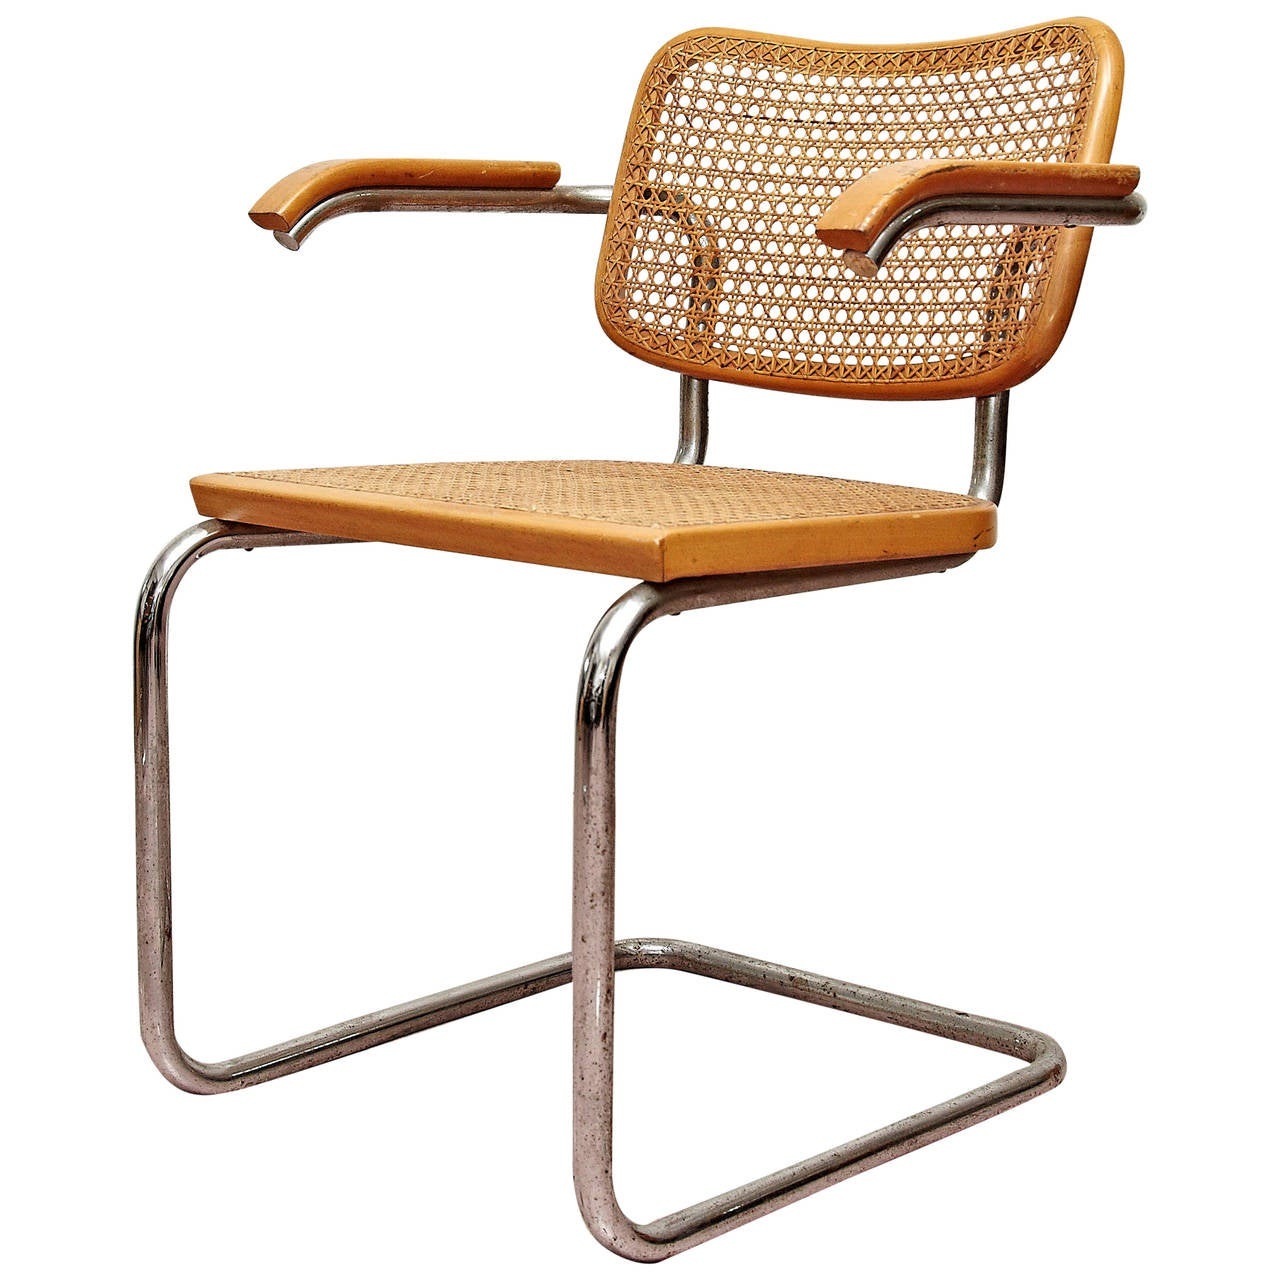 Marcel Breuer Cesca Chair Circa 1950 At 1stdibs